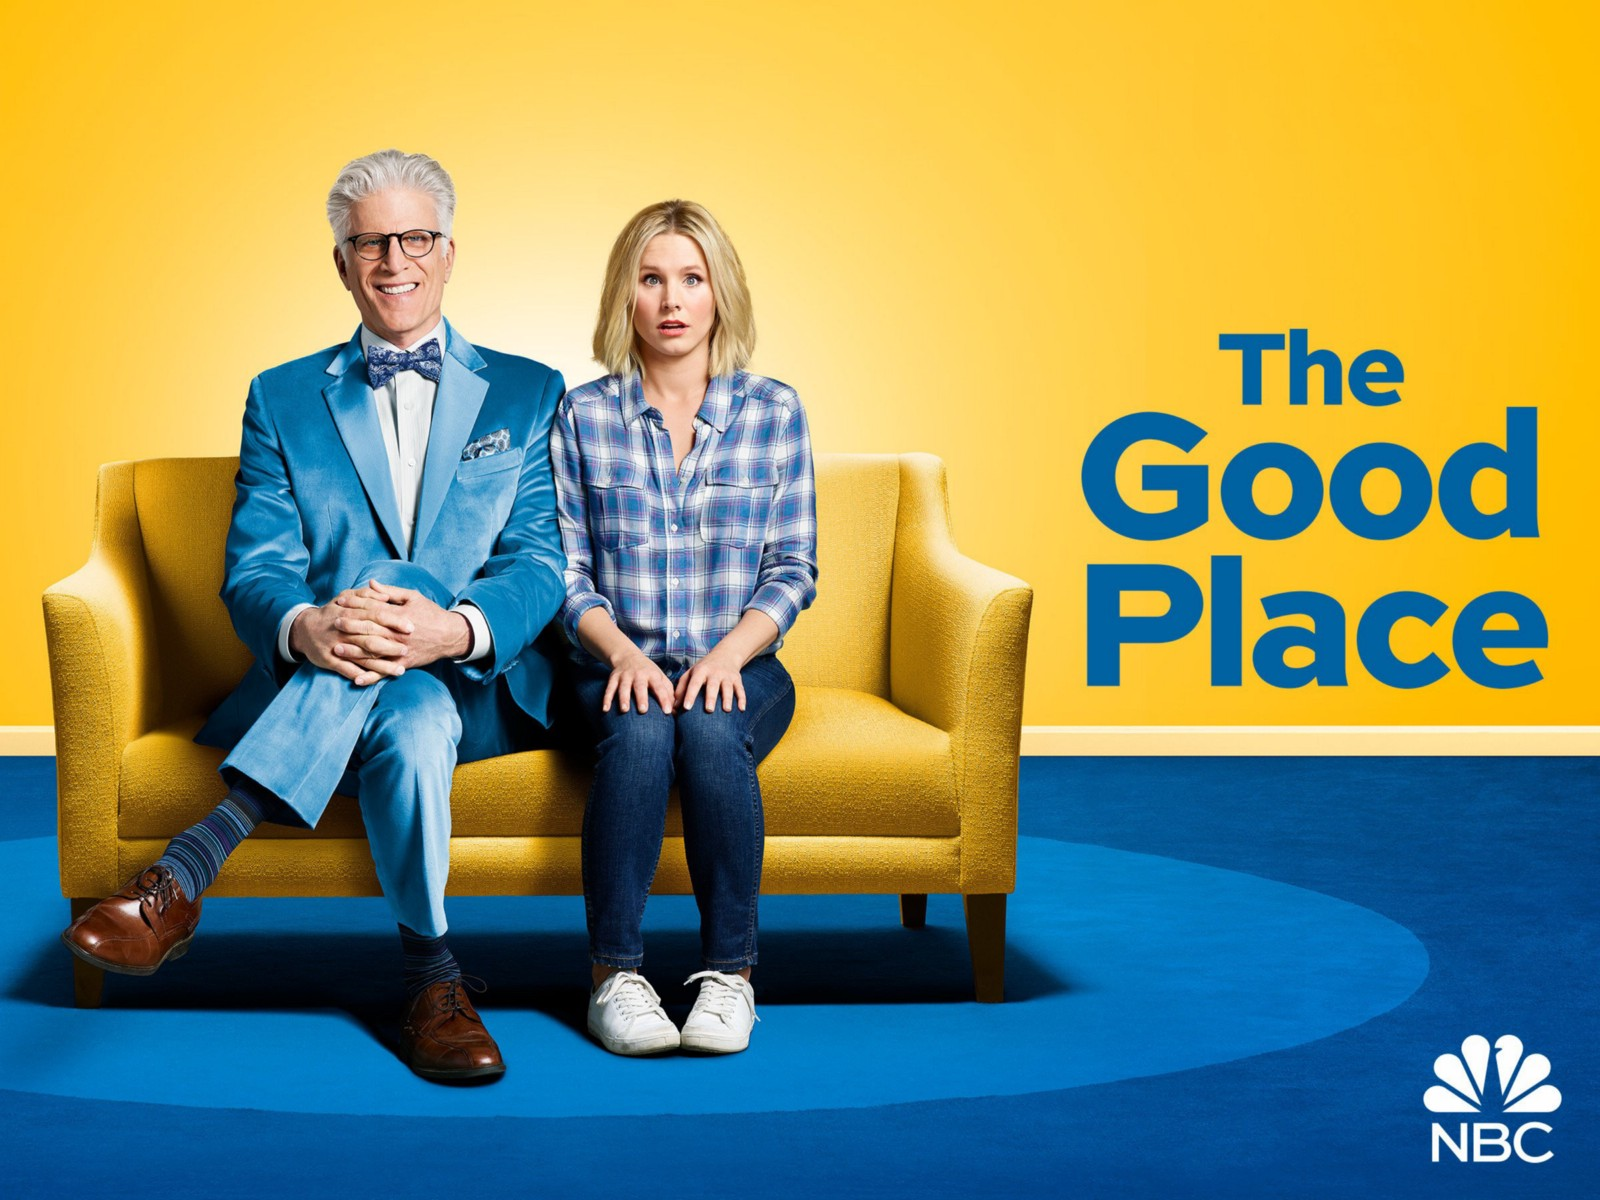 Nbc S The Good Place Is At First Glance A Show About Colorful Whimsical But Non Specific Afterlife Utopia For Those Who Lived Life